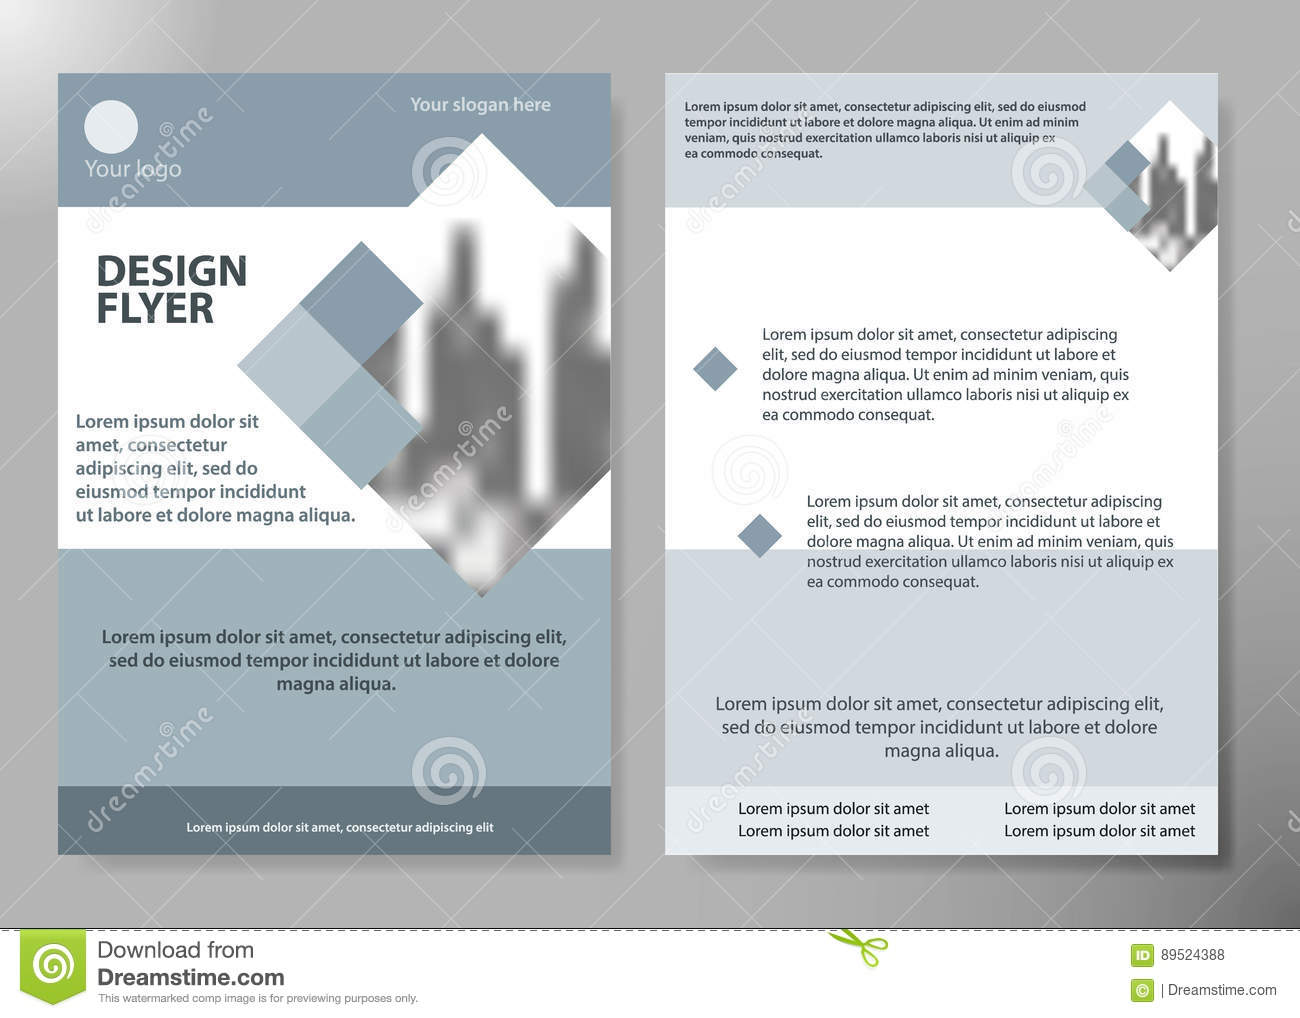 Minimal flyers report business magazine poster layout portfolio minimal flyers report business magazine poster layout portfolio templateochure design template vectorsquare accmission Image collections